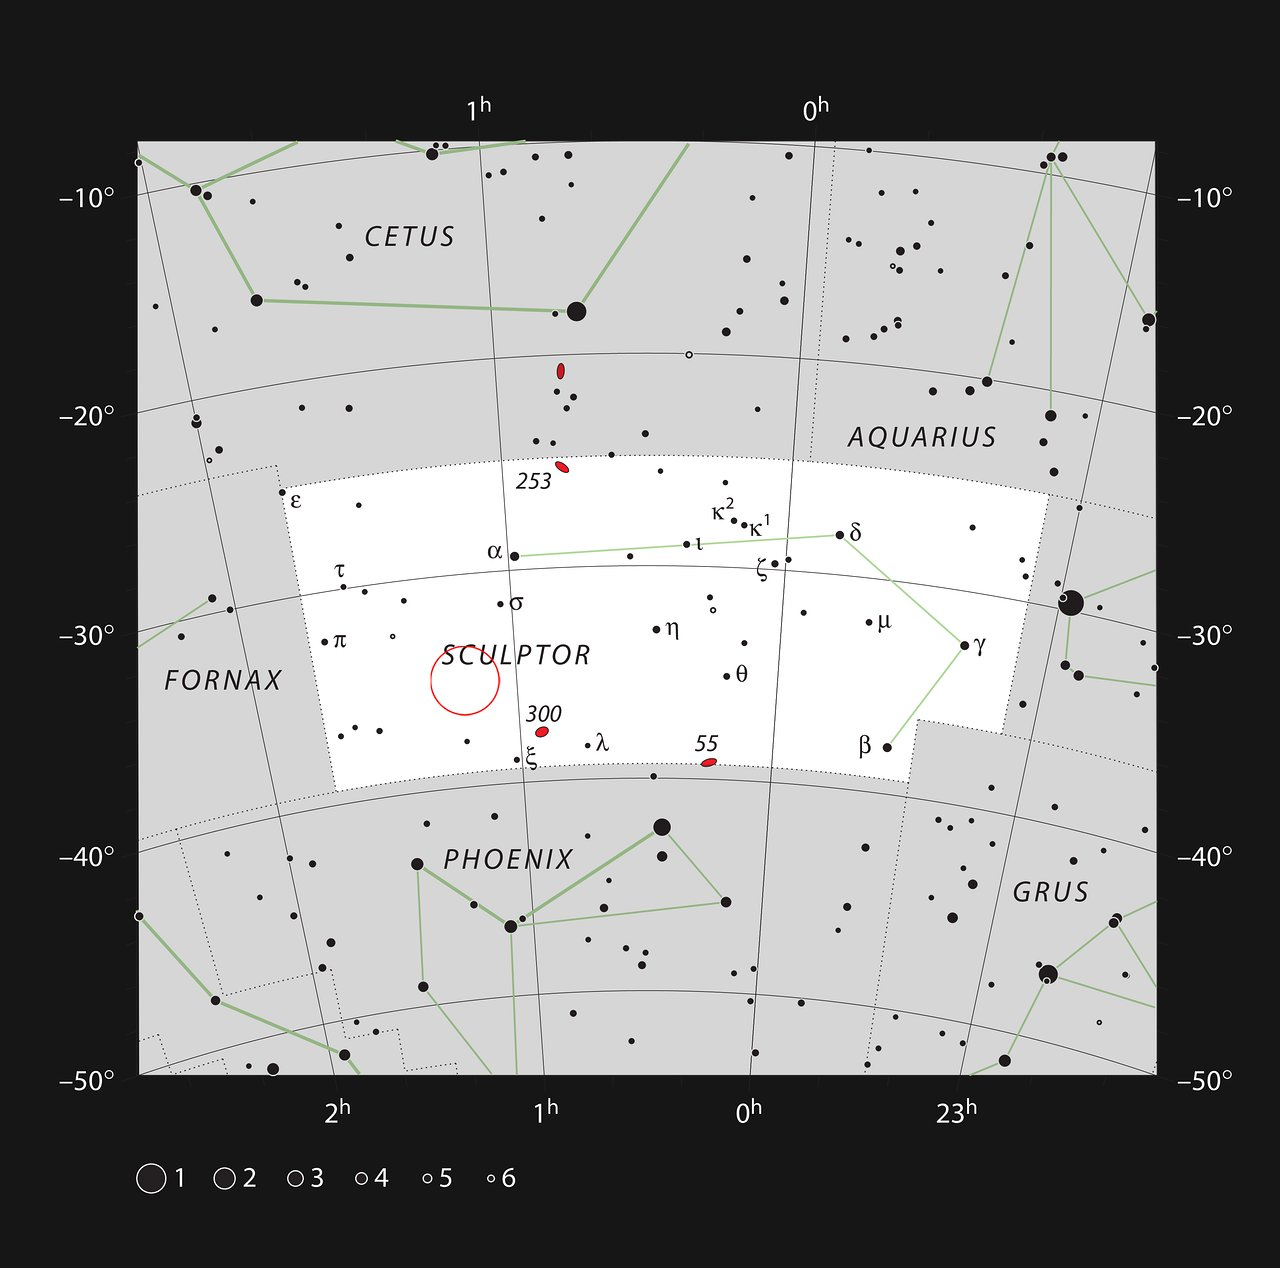 The location of the quasar HE 0109-3518